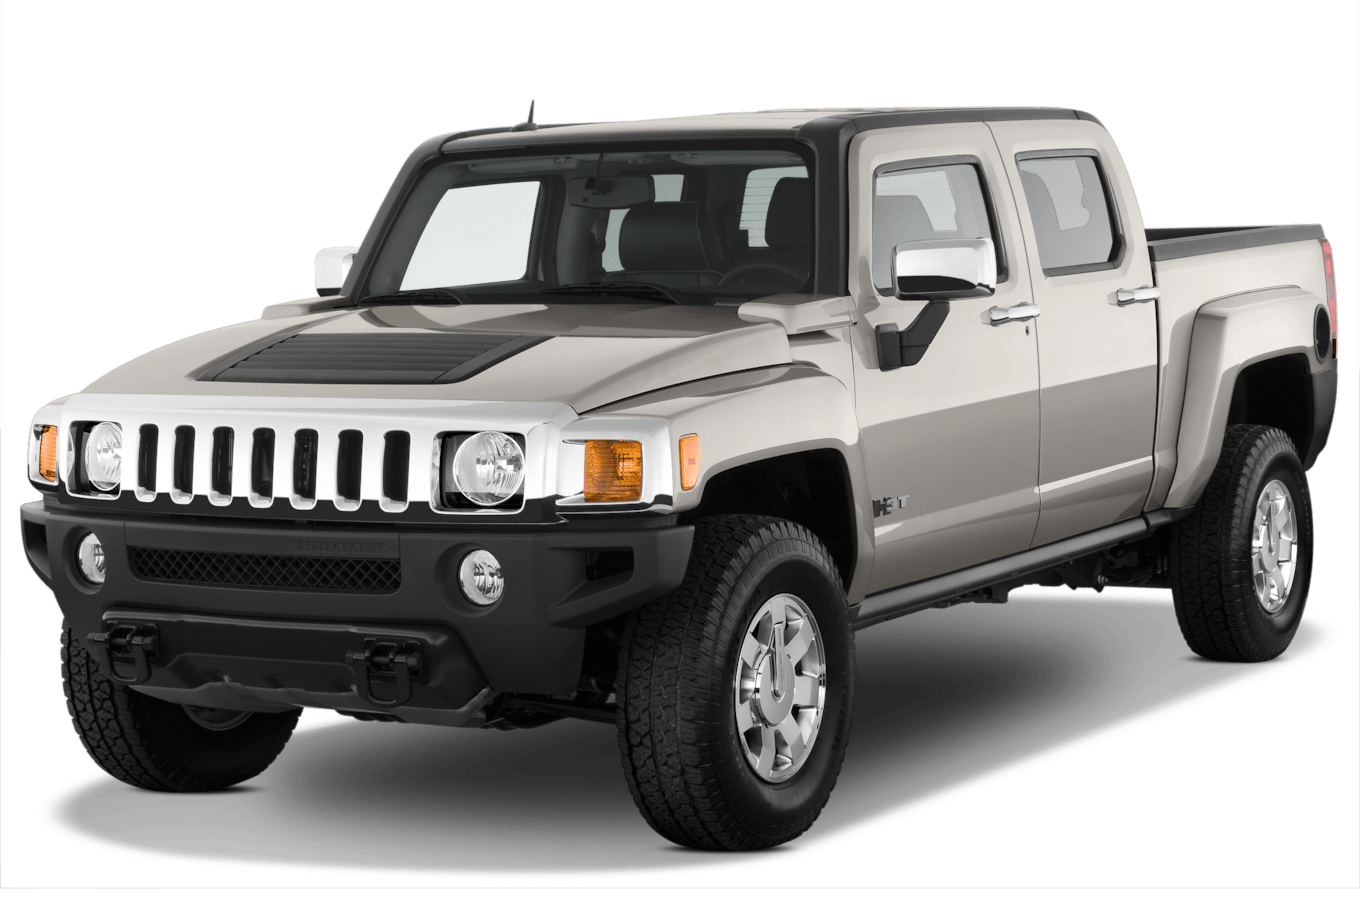 2010 Hummer H3T Reviews and Rating